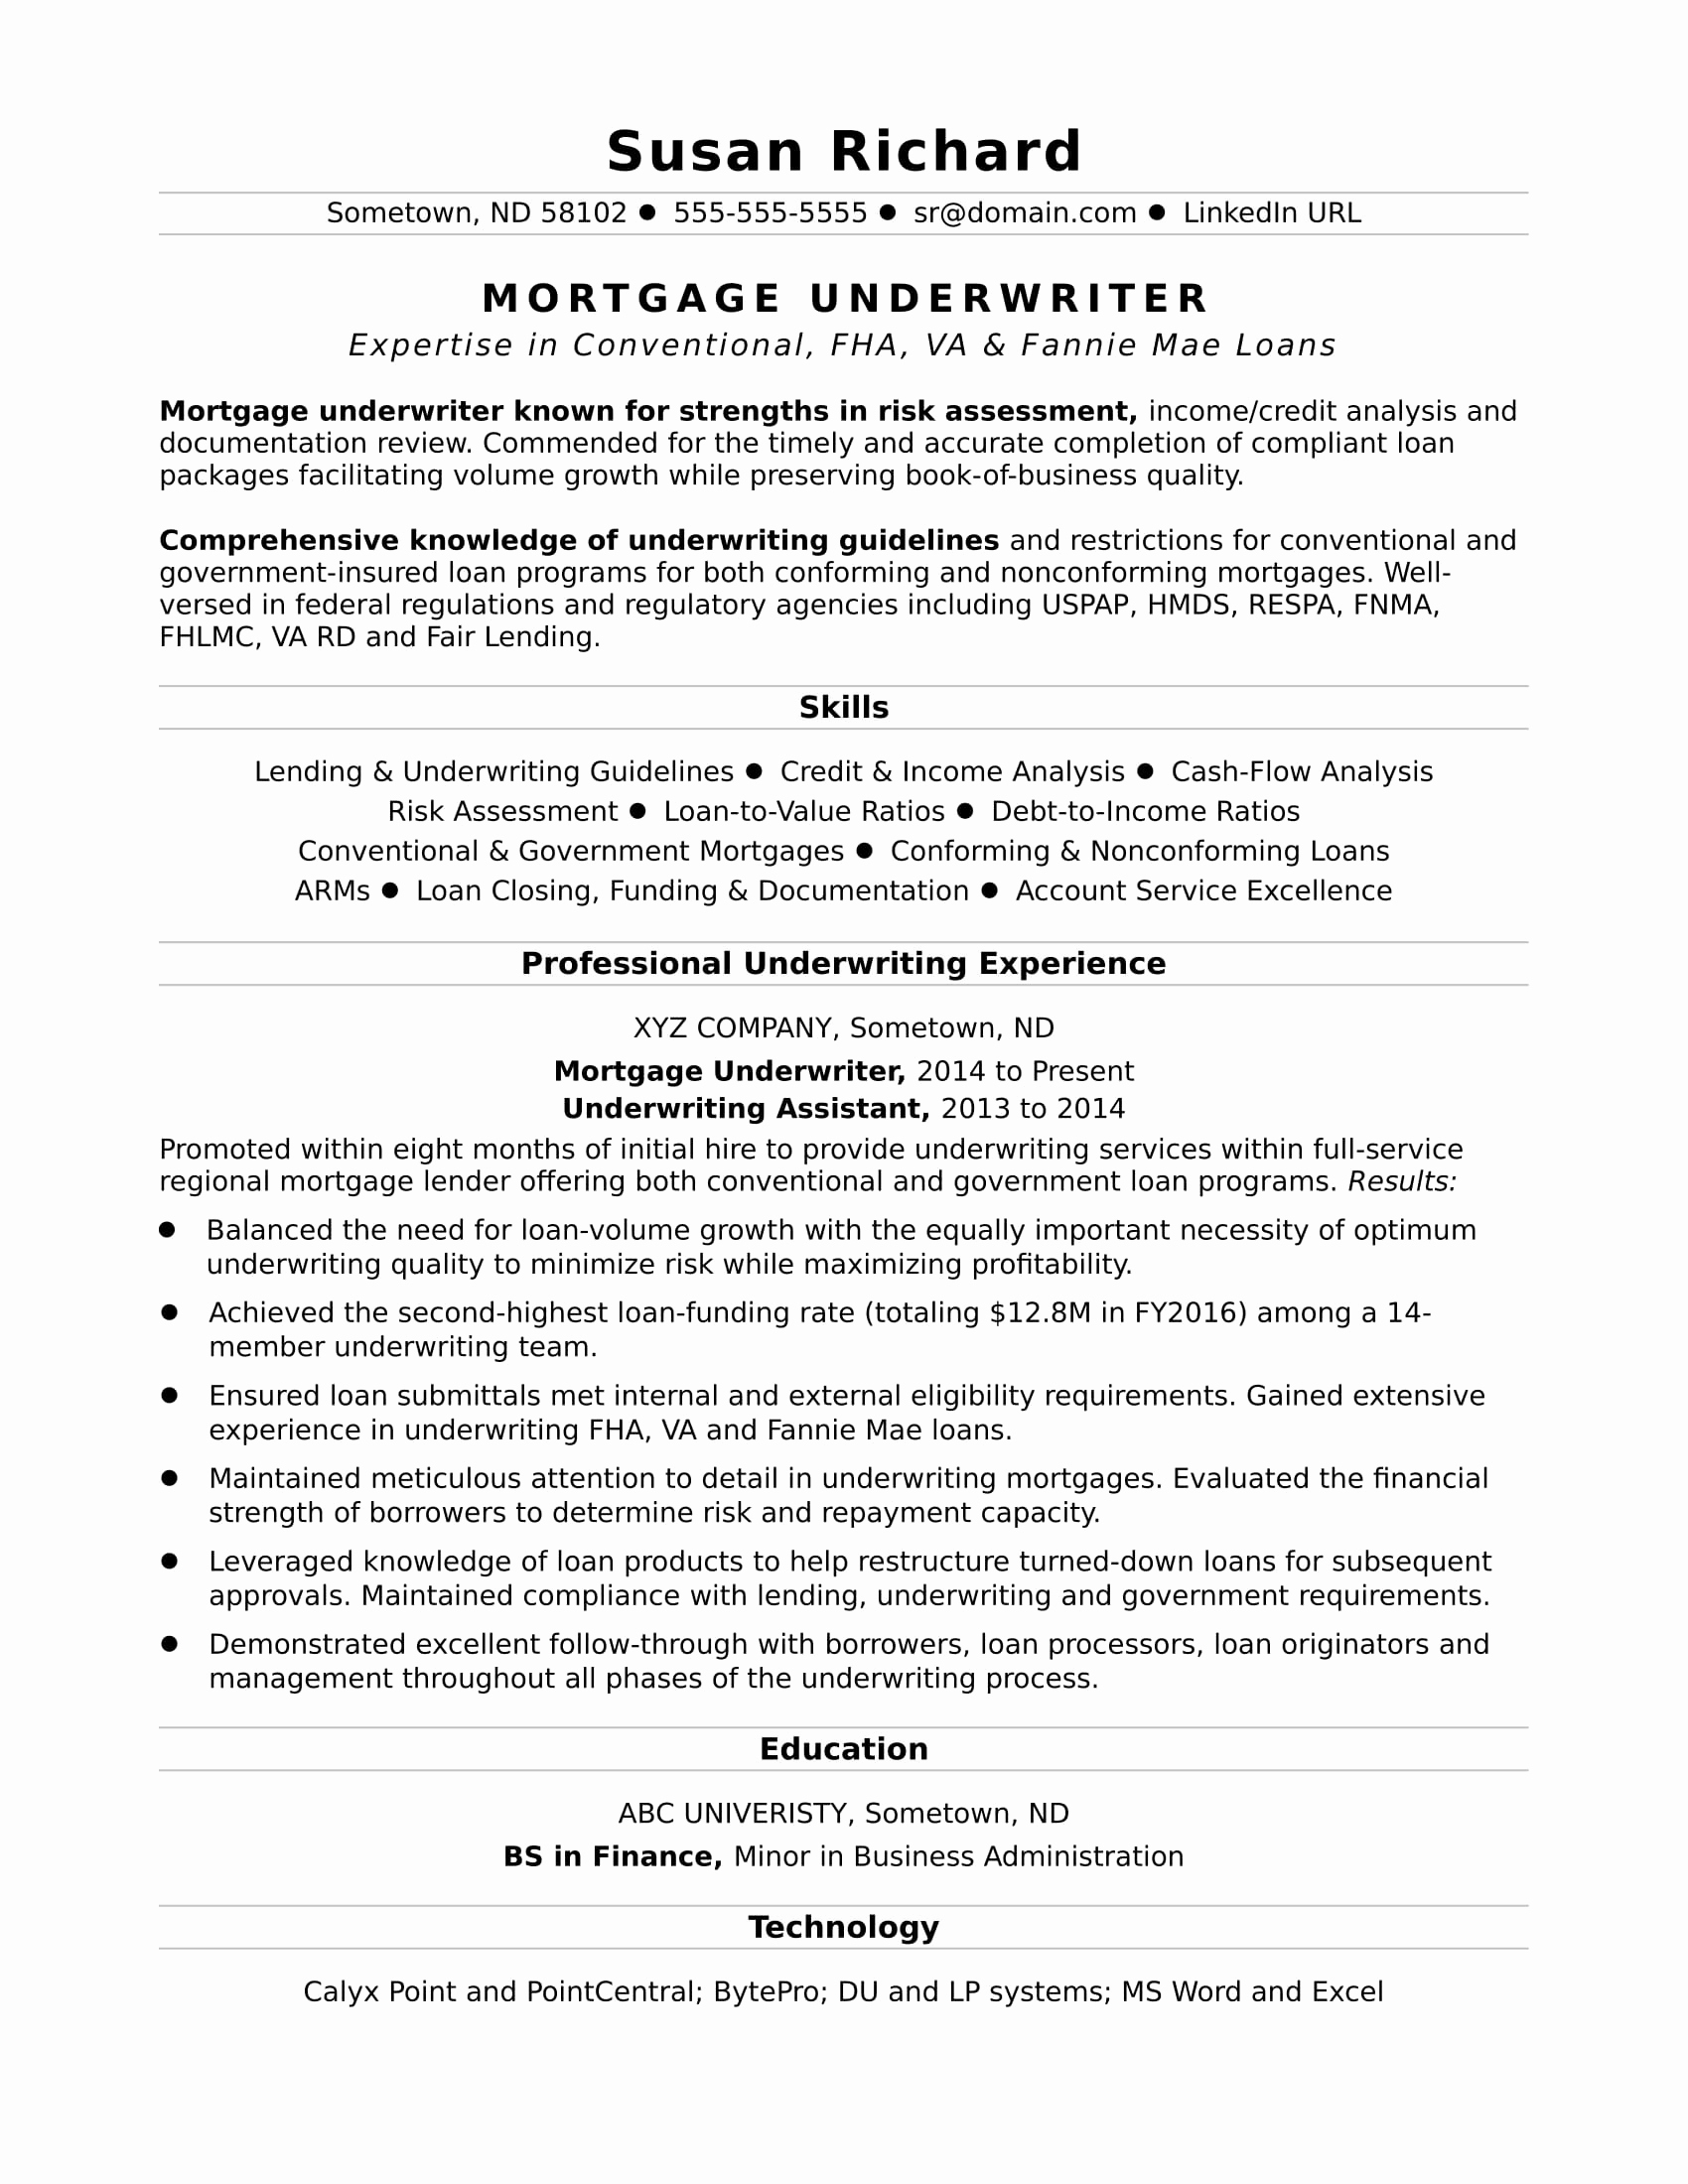 Linkedin Cover Letter Template Samples | Letter Templates